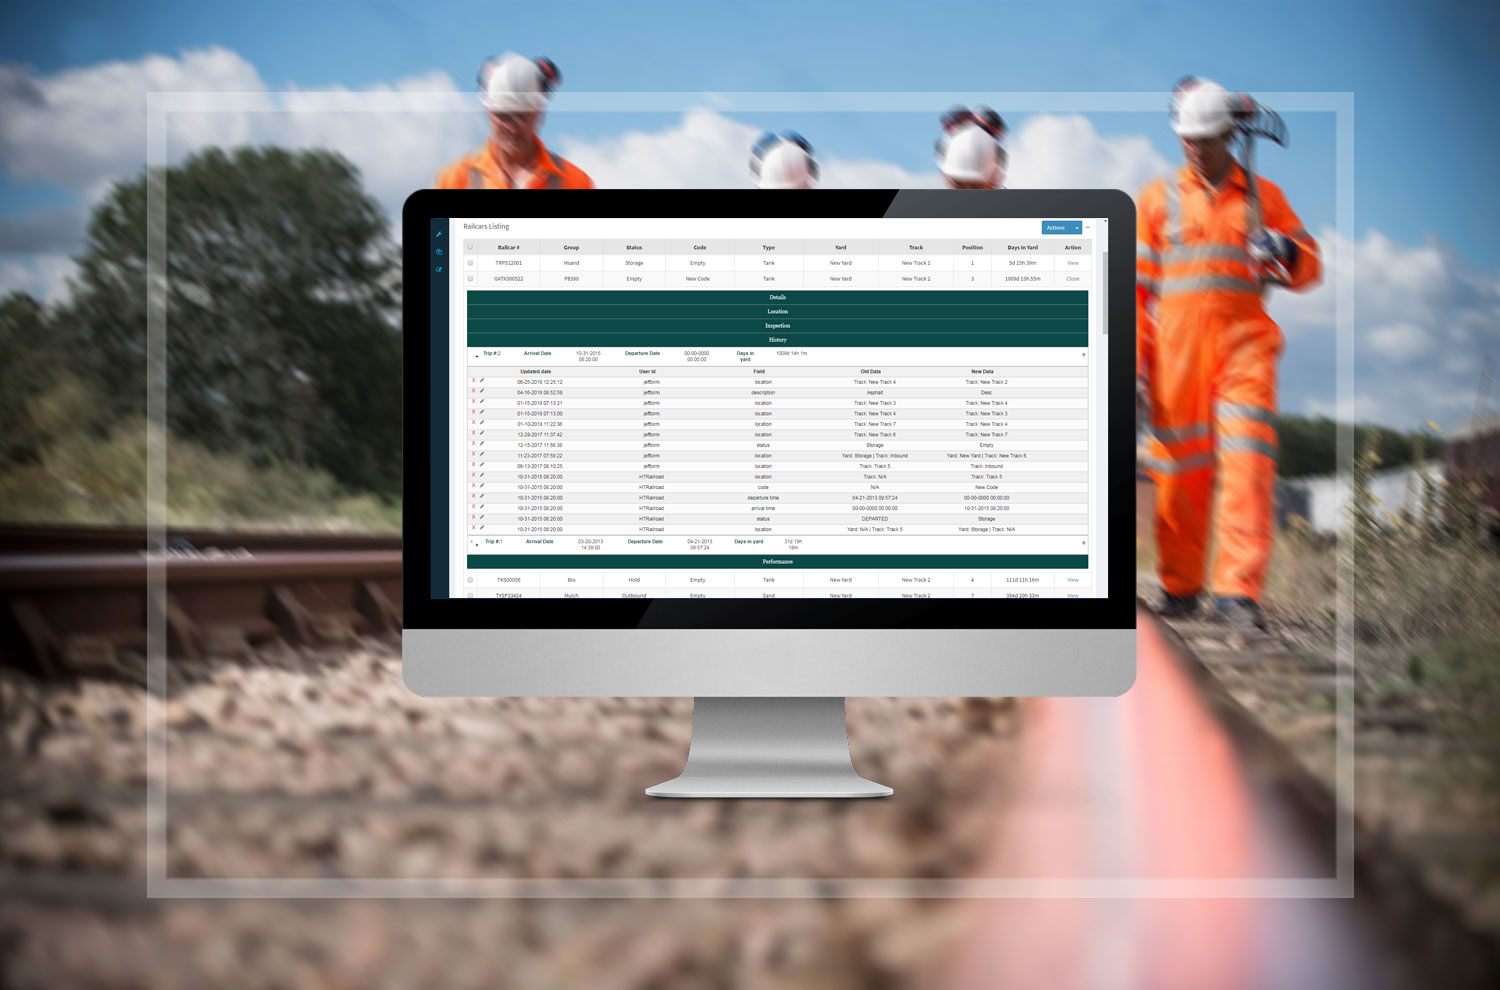 Railcar inspections, Inspection for Railcars